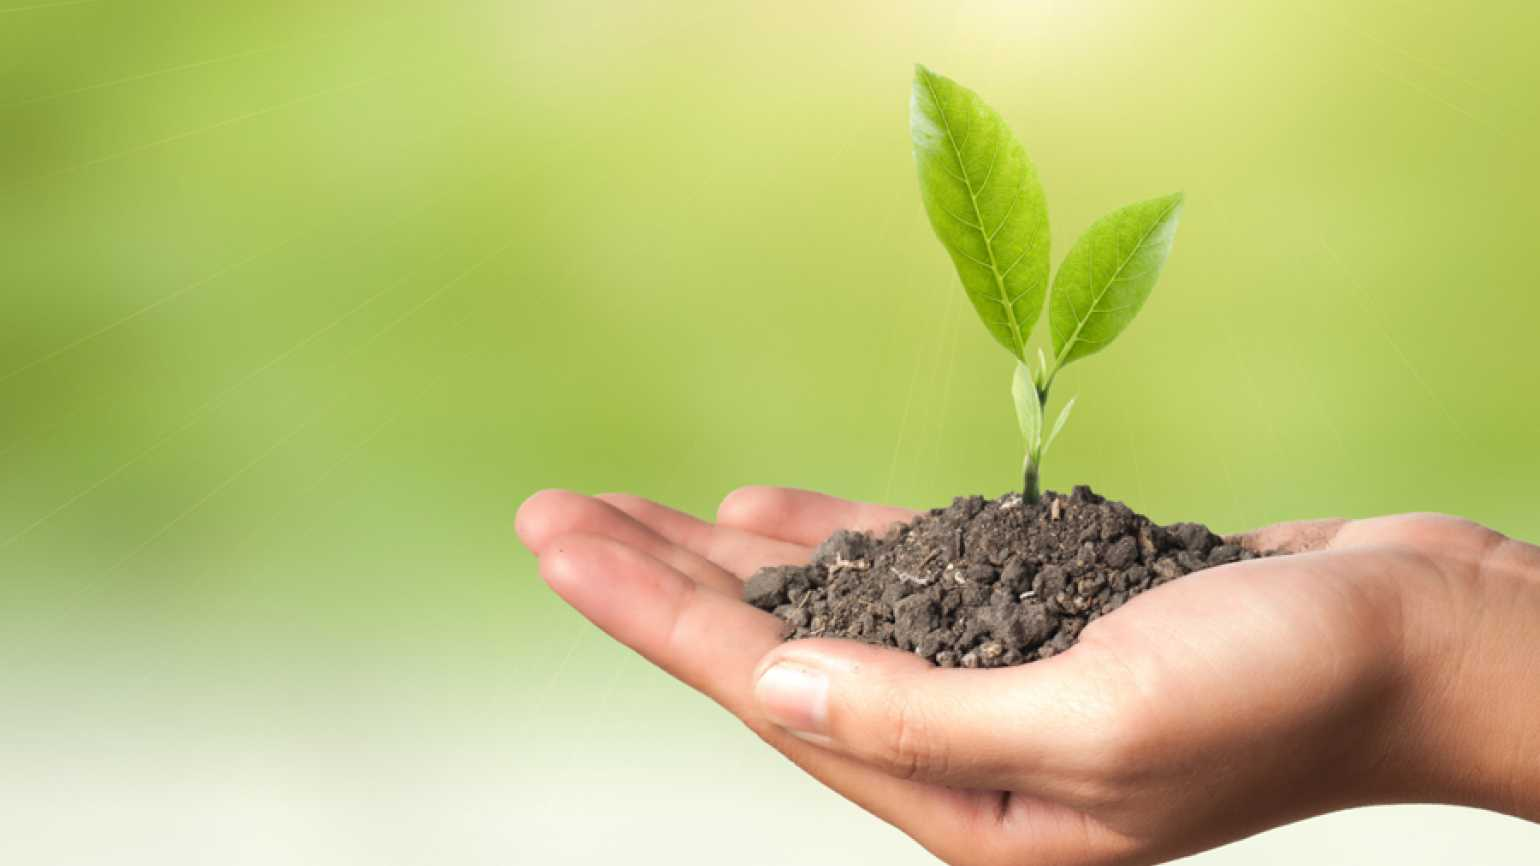 Guideposts: An outstretched hand holds a clump of soil from which a green plant sprouts